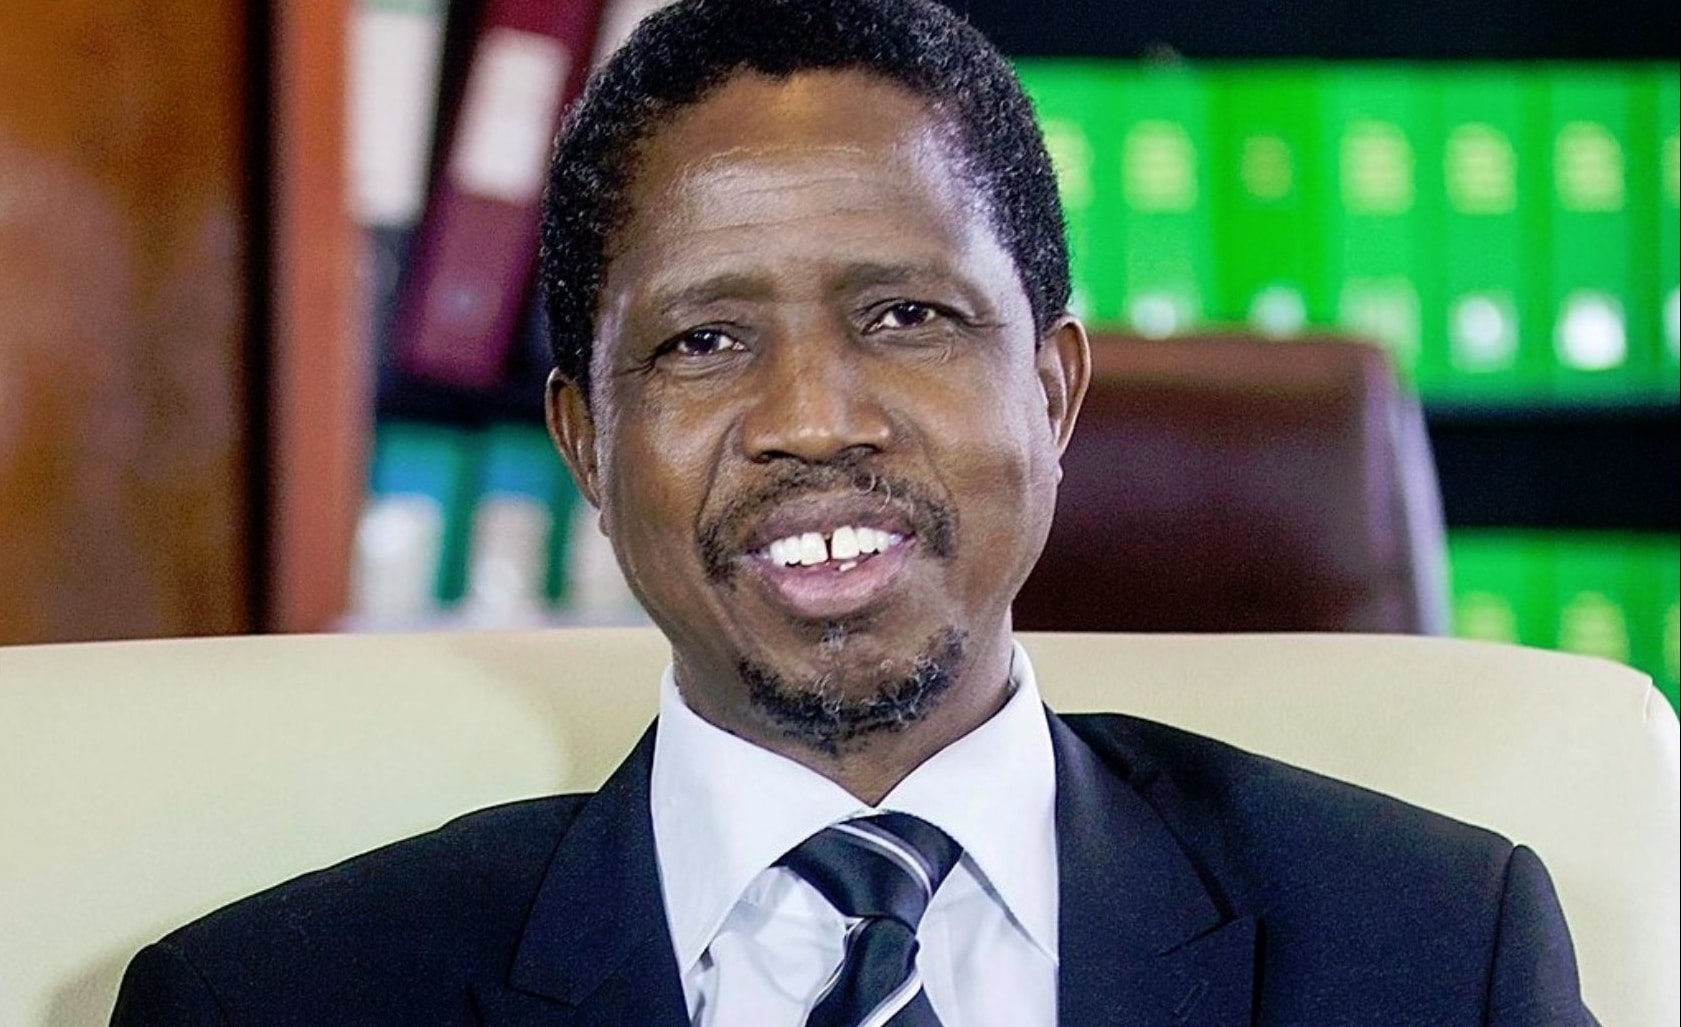 Magic picture that wowed President Edgar Lungu Zambia Daily Mail Pictures of edgar lungu